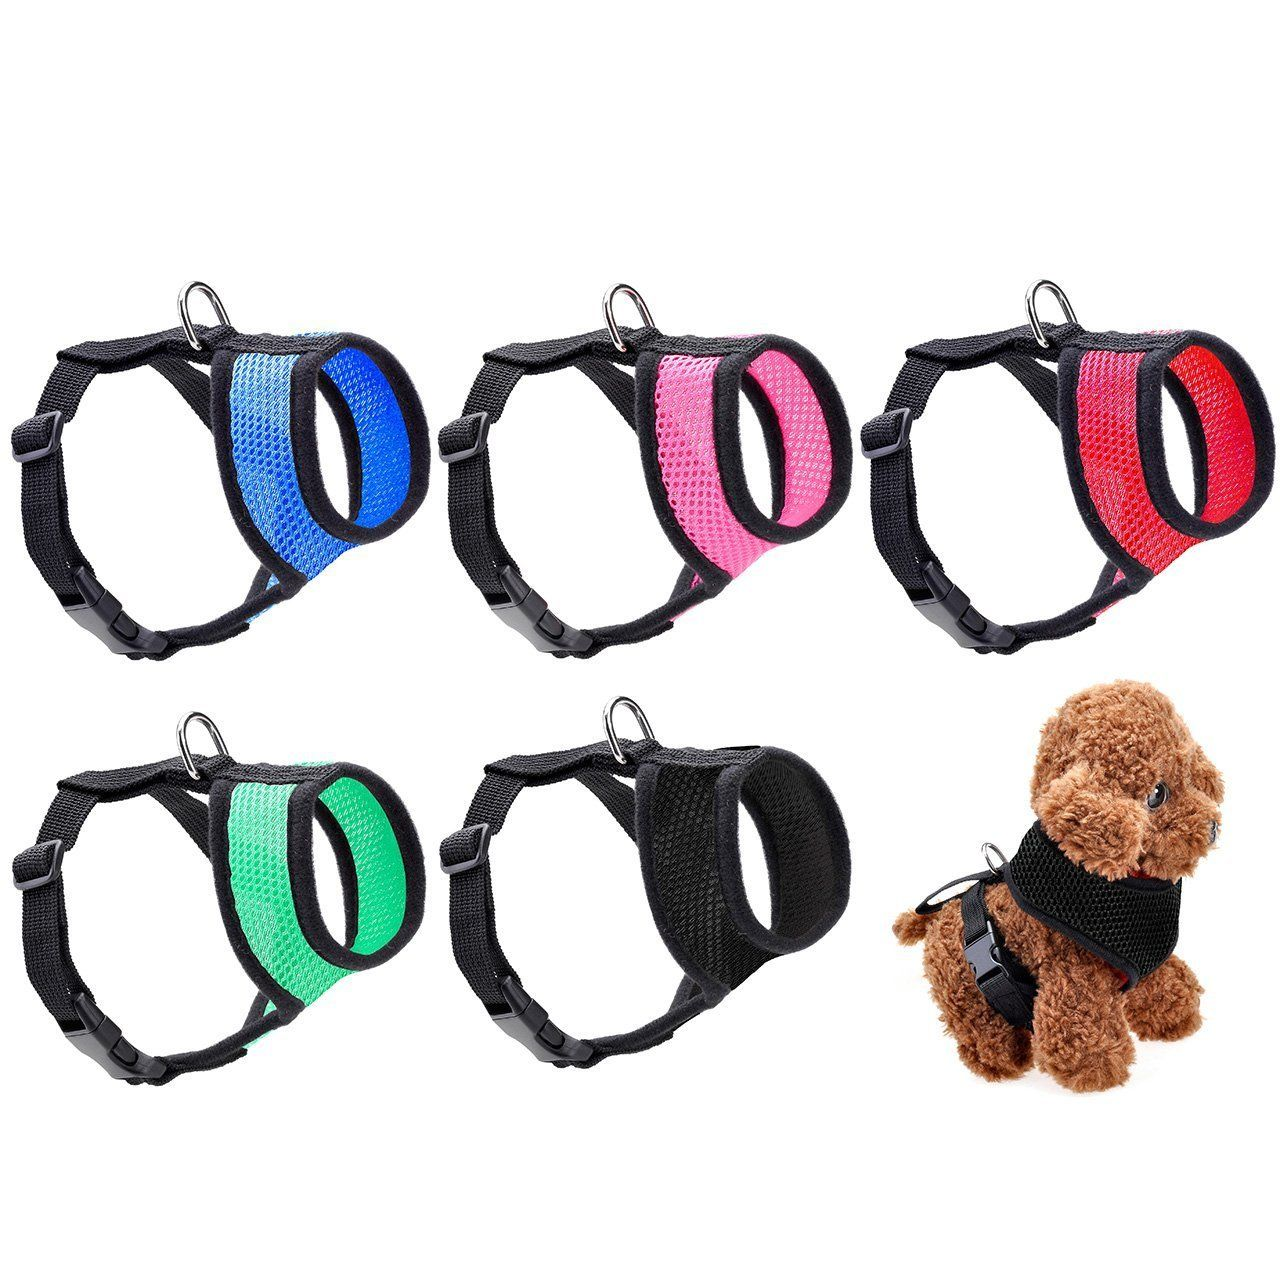 Yoption Dog Collar Harness Cat Pet Safe Padded Vest Easy Soft Walking Harness No Pull Tug Free Or Choking Service Vehicle Seatbe Pet Safe Pet Bag Dog Harness